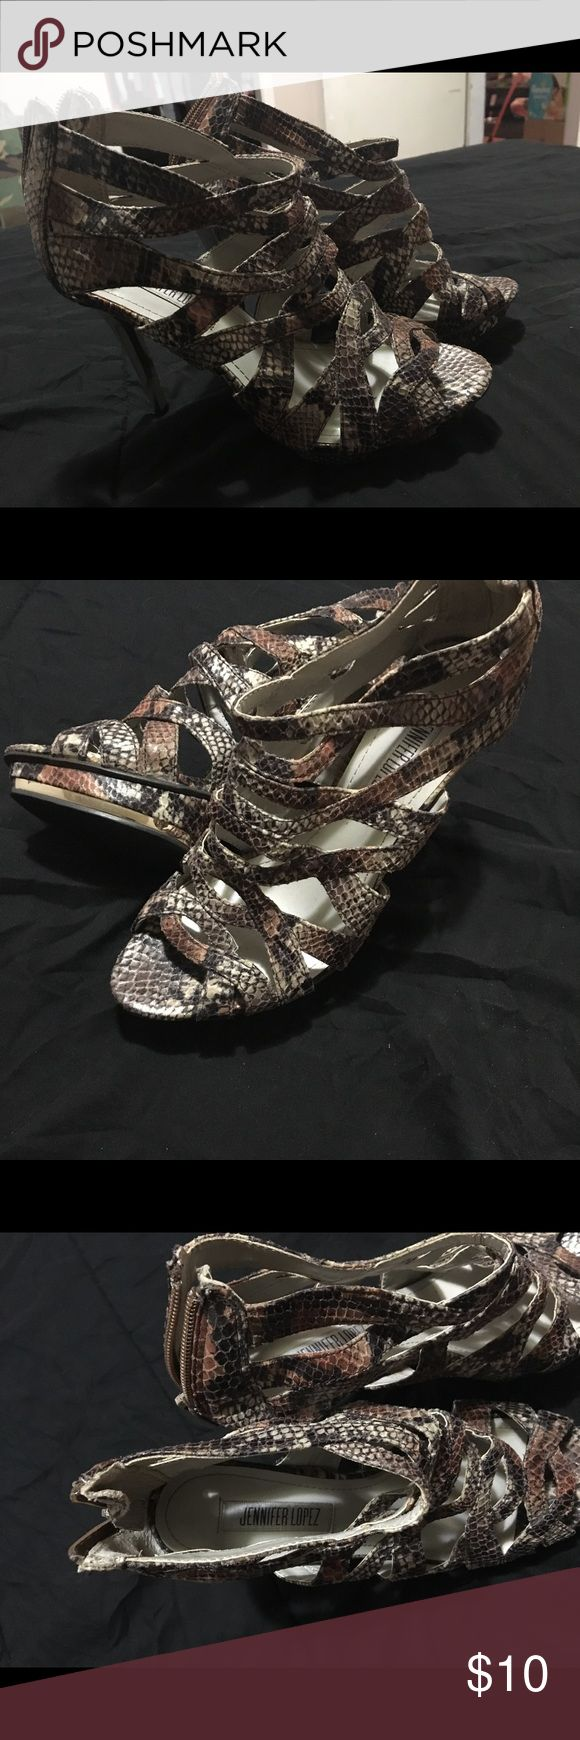 "Jennifer Lopez snakeskin heels Rarely worn, great condition. Gold heel, approx height 5"" Jennifer Lopez Shoes Heels"